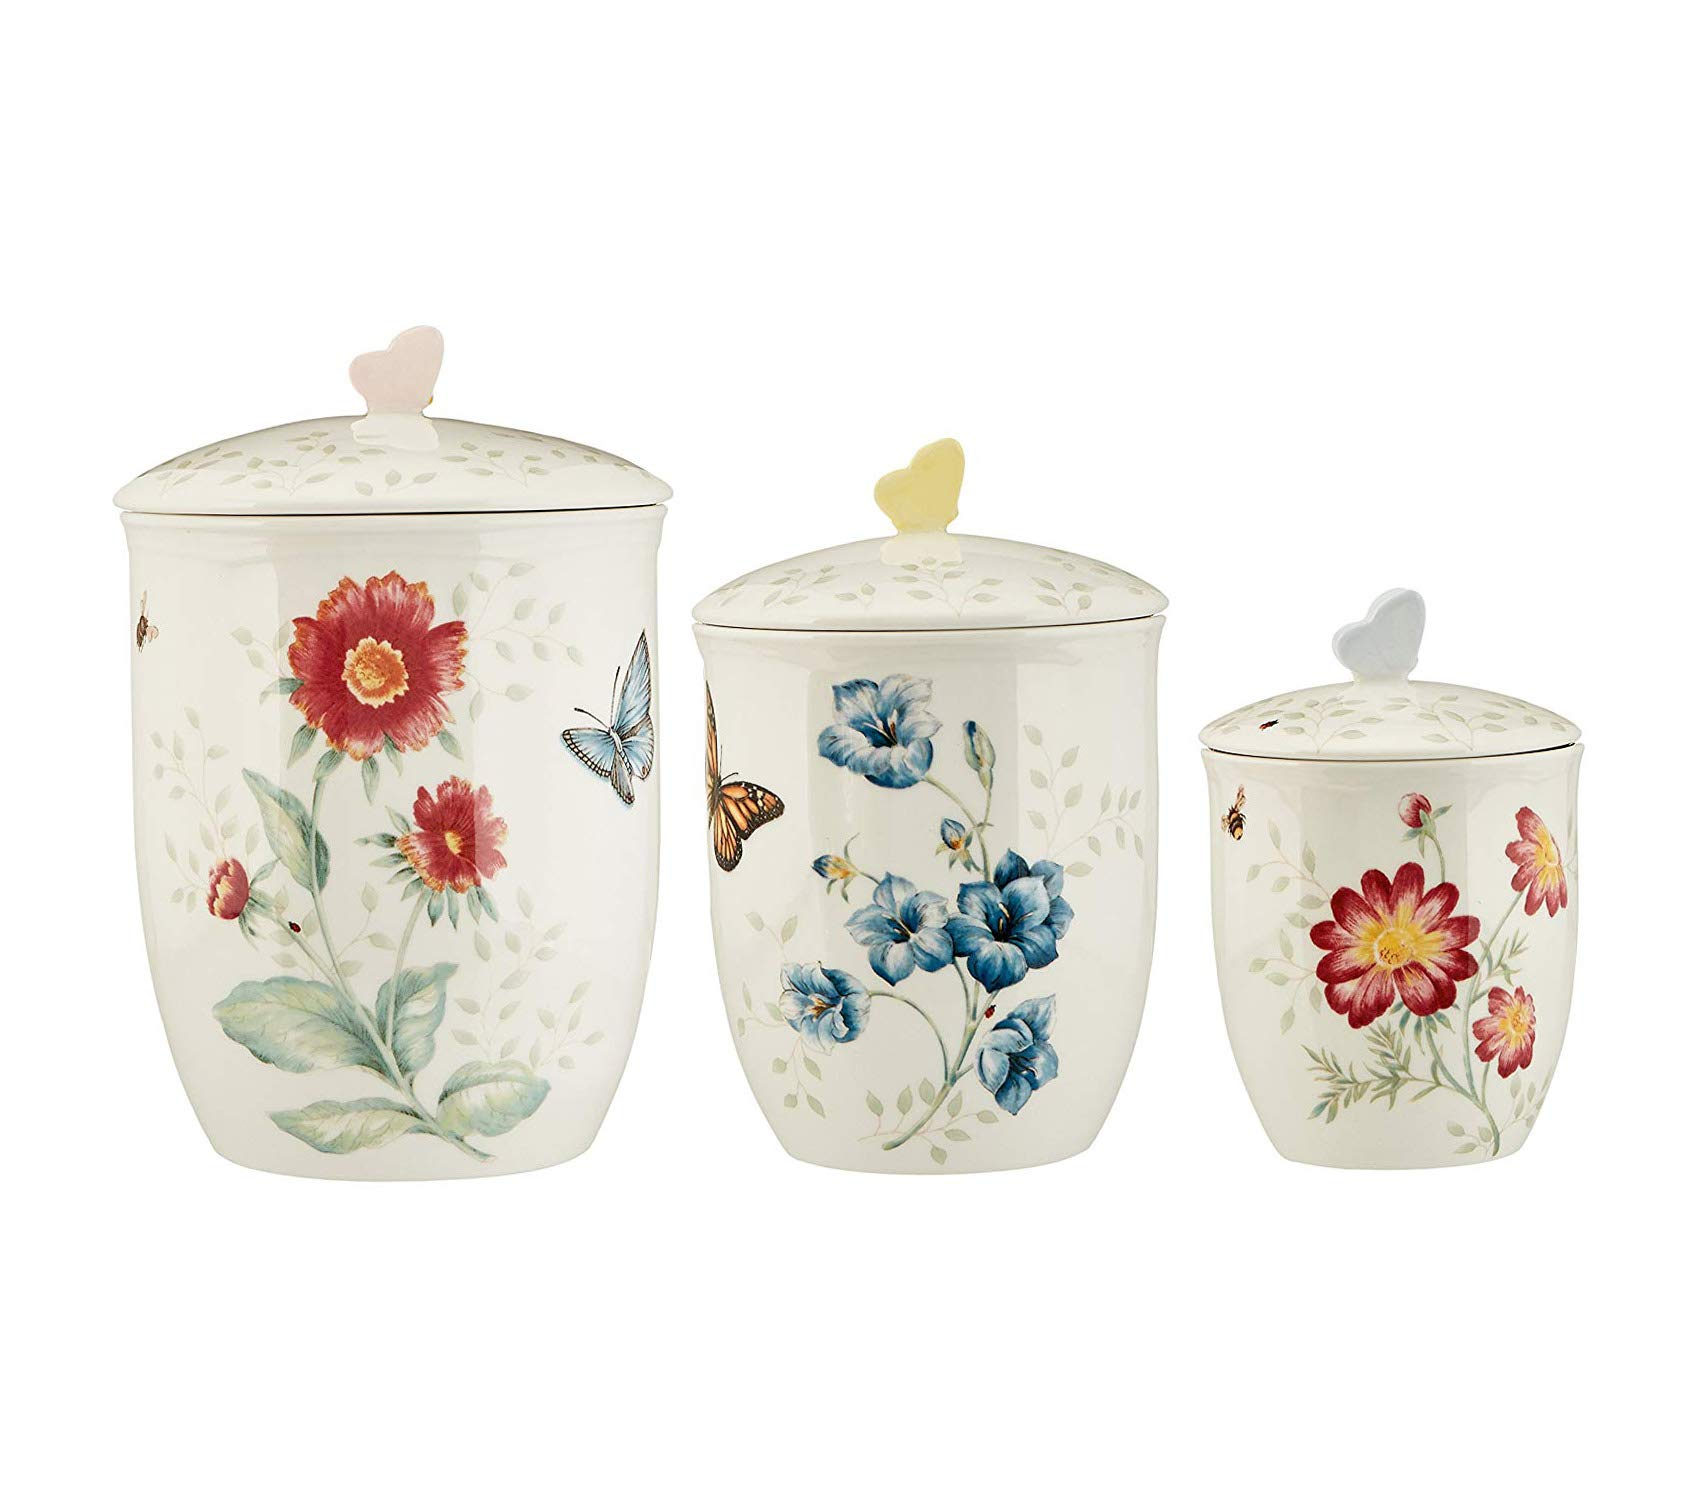 Lеnоx Premium 3 Piece Butterfly Meadow Canister Set White Storage